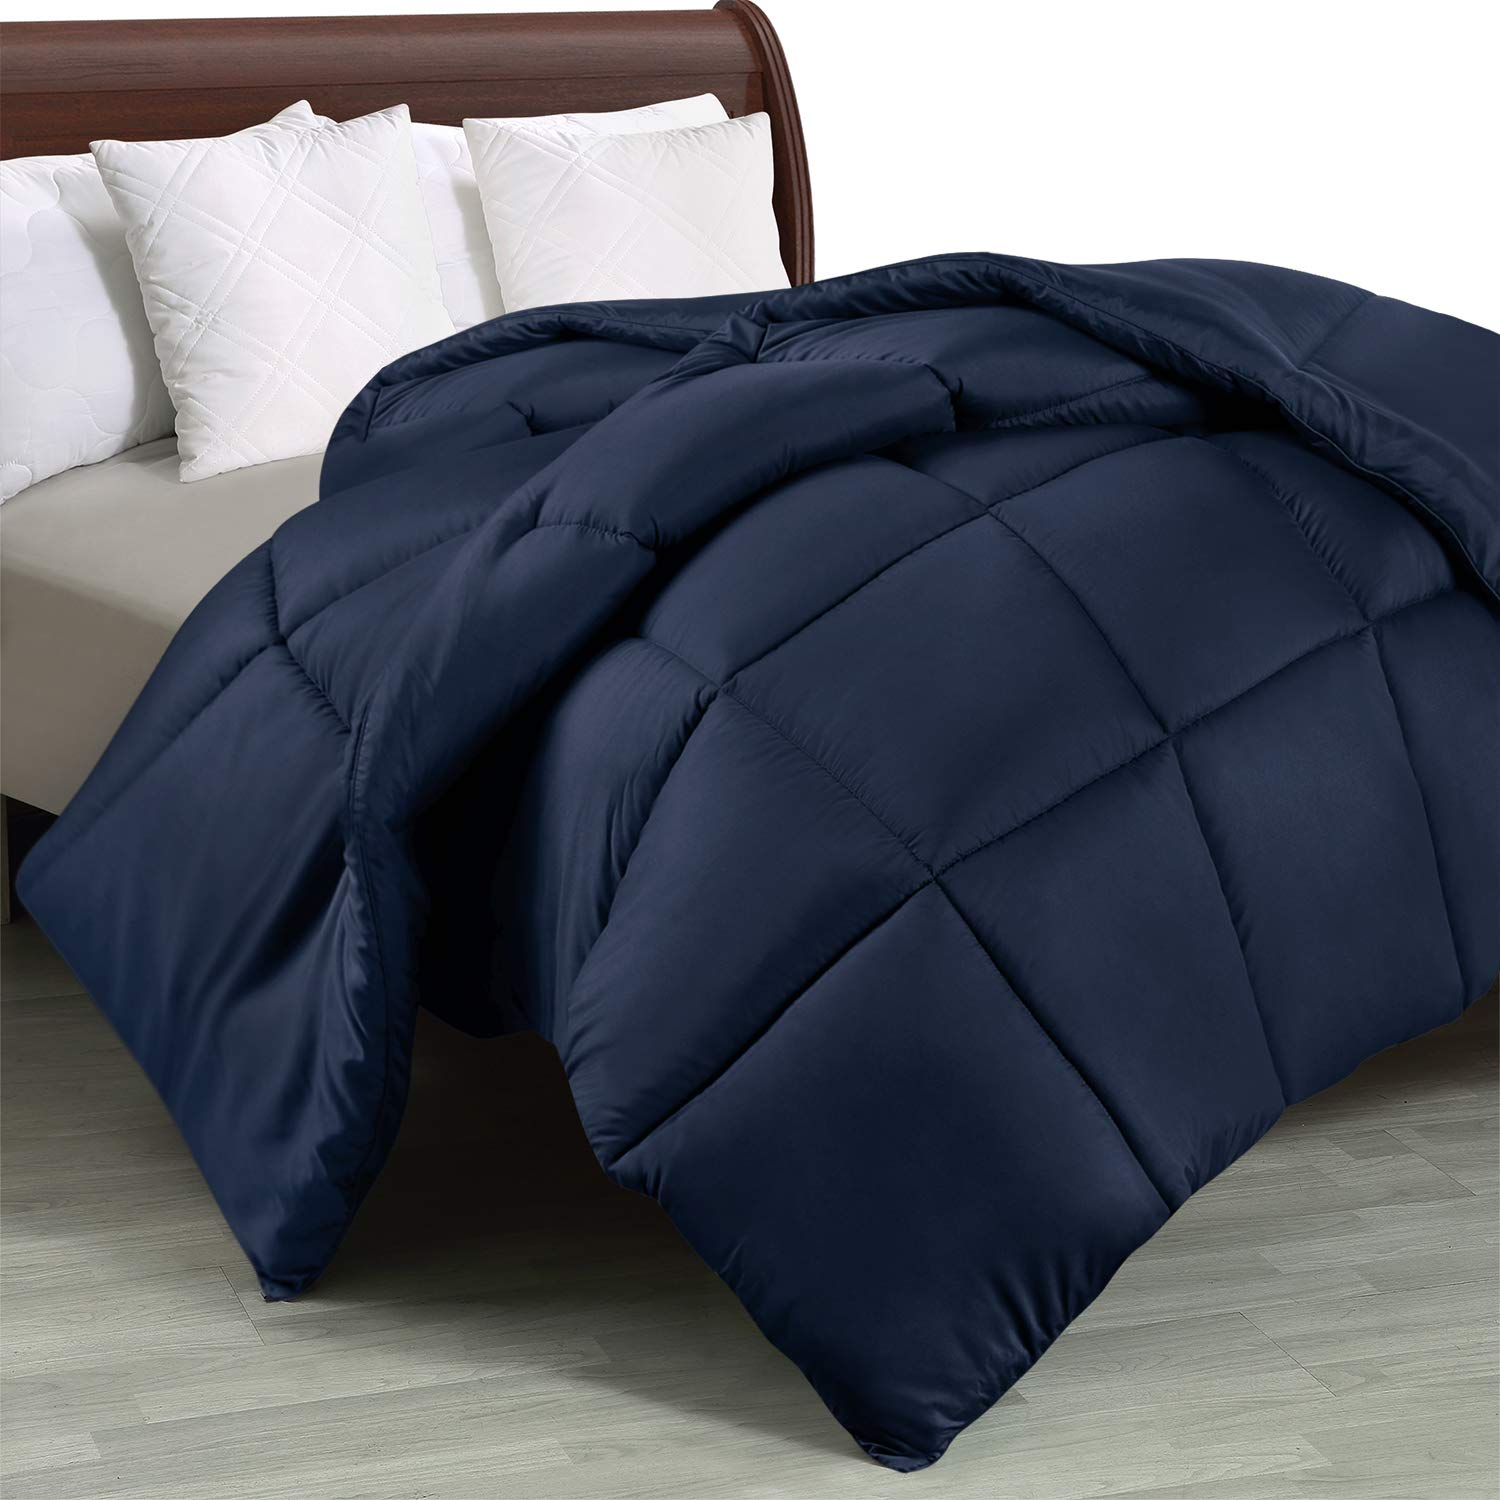 Best Down Comforters 2020 – Fluffy & Lightweight